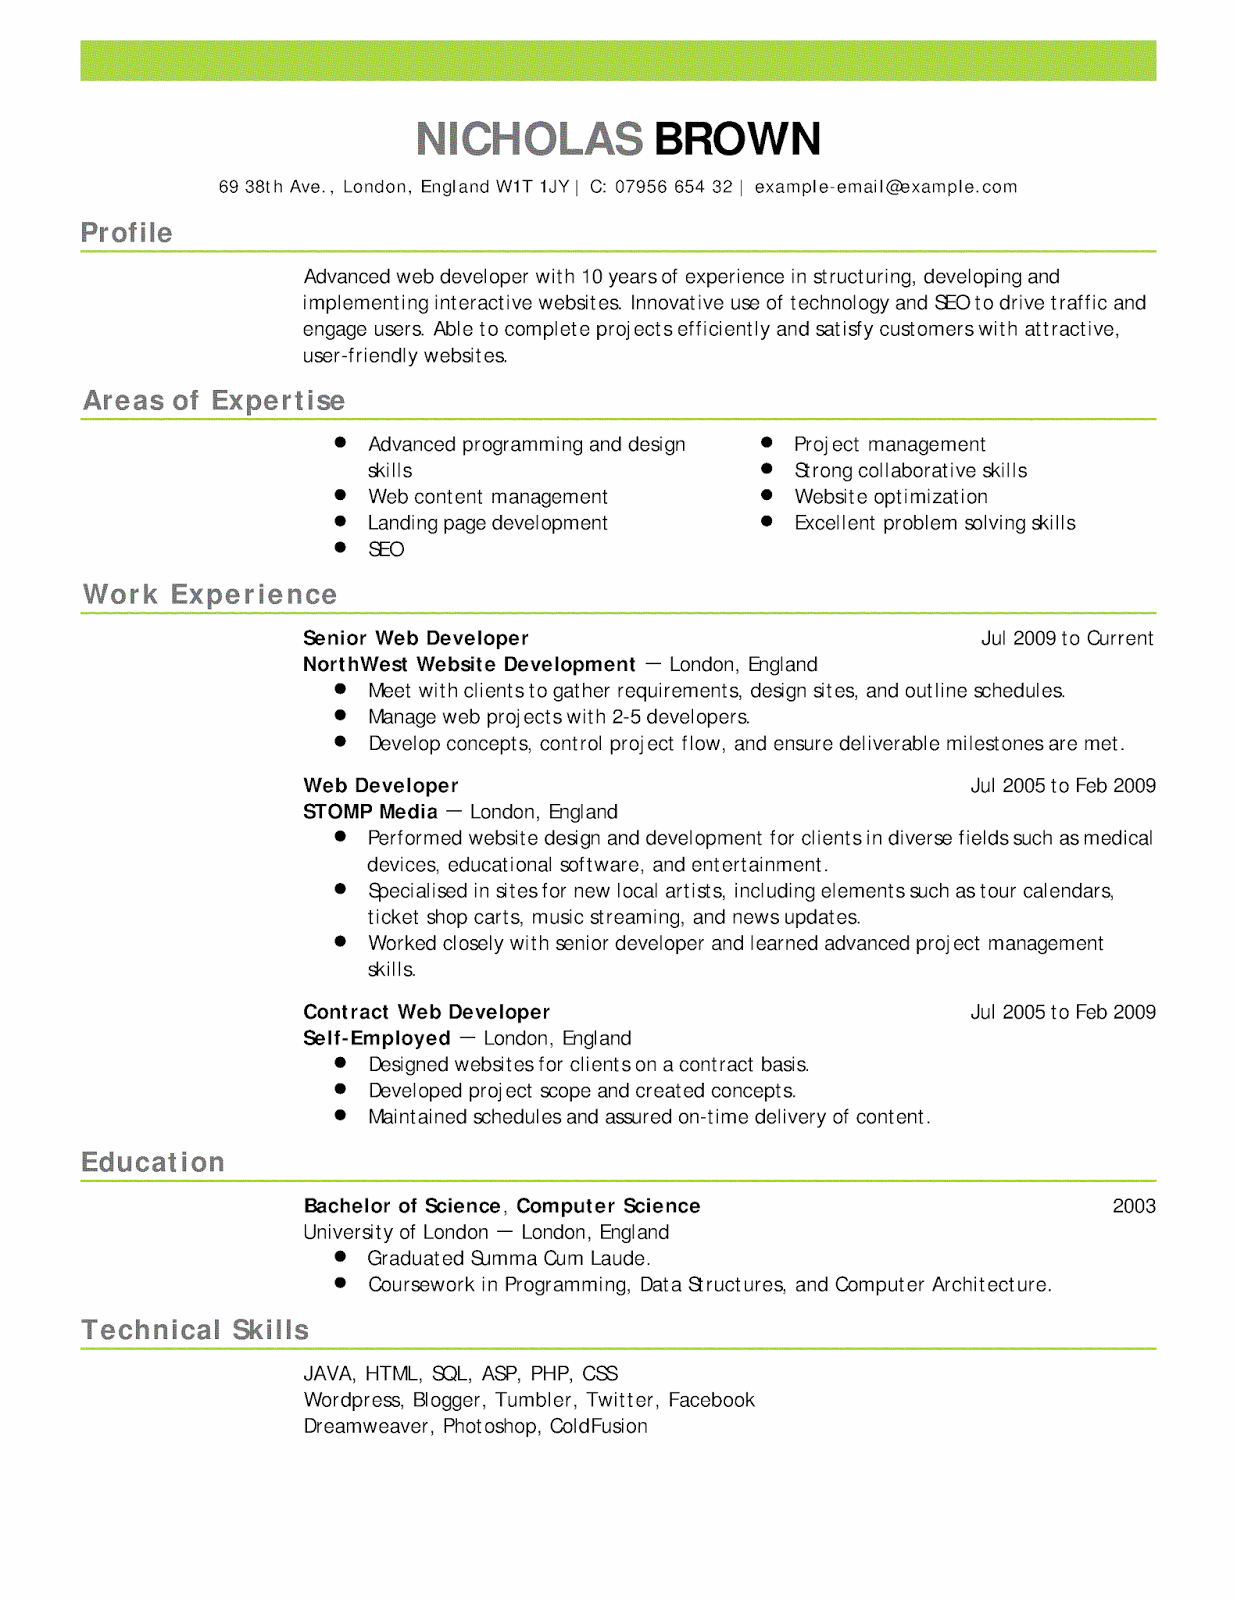 resume templates tips for using resume templates to write a